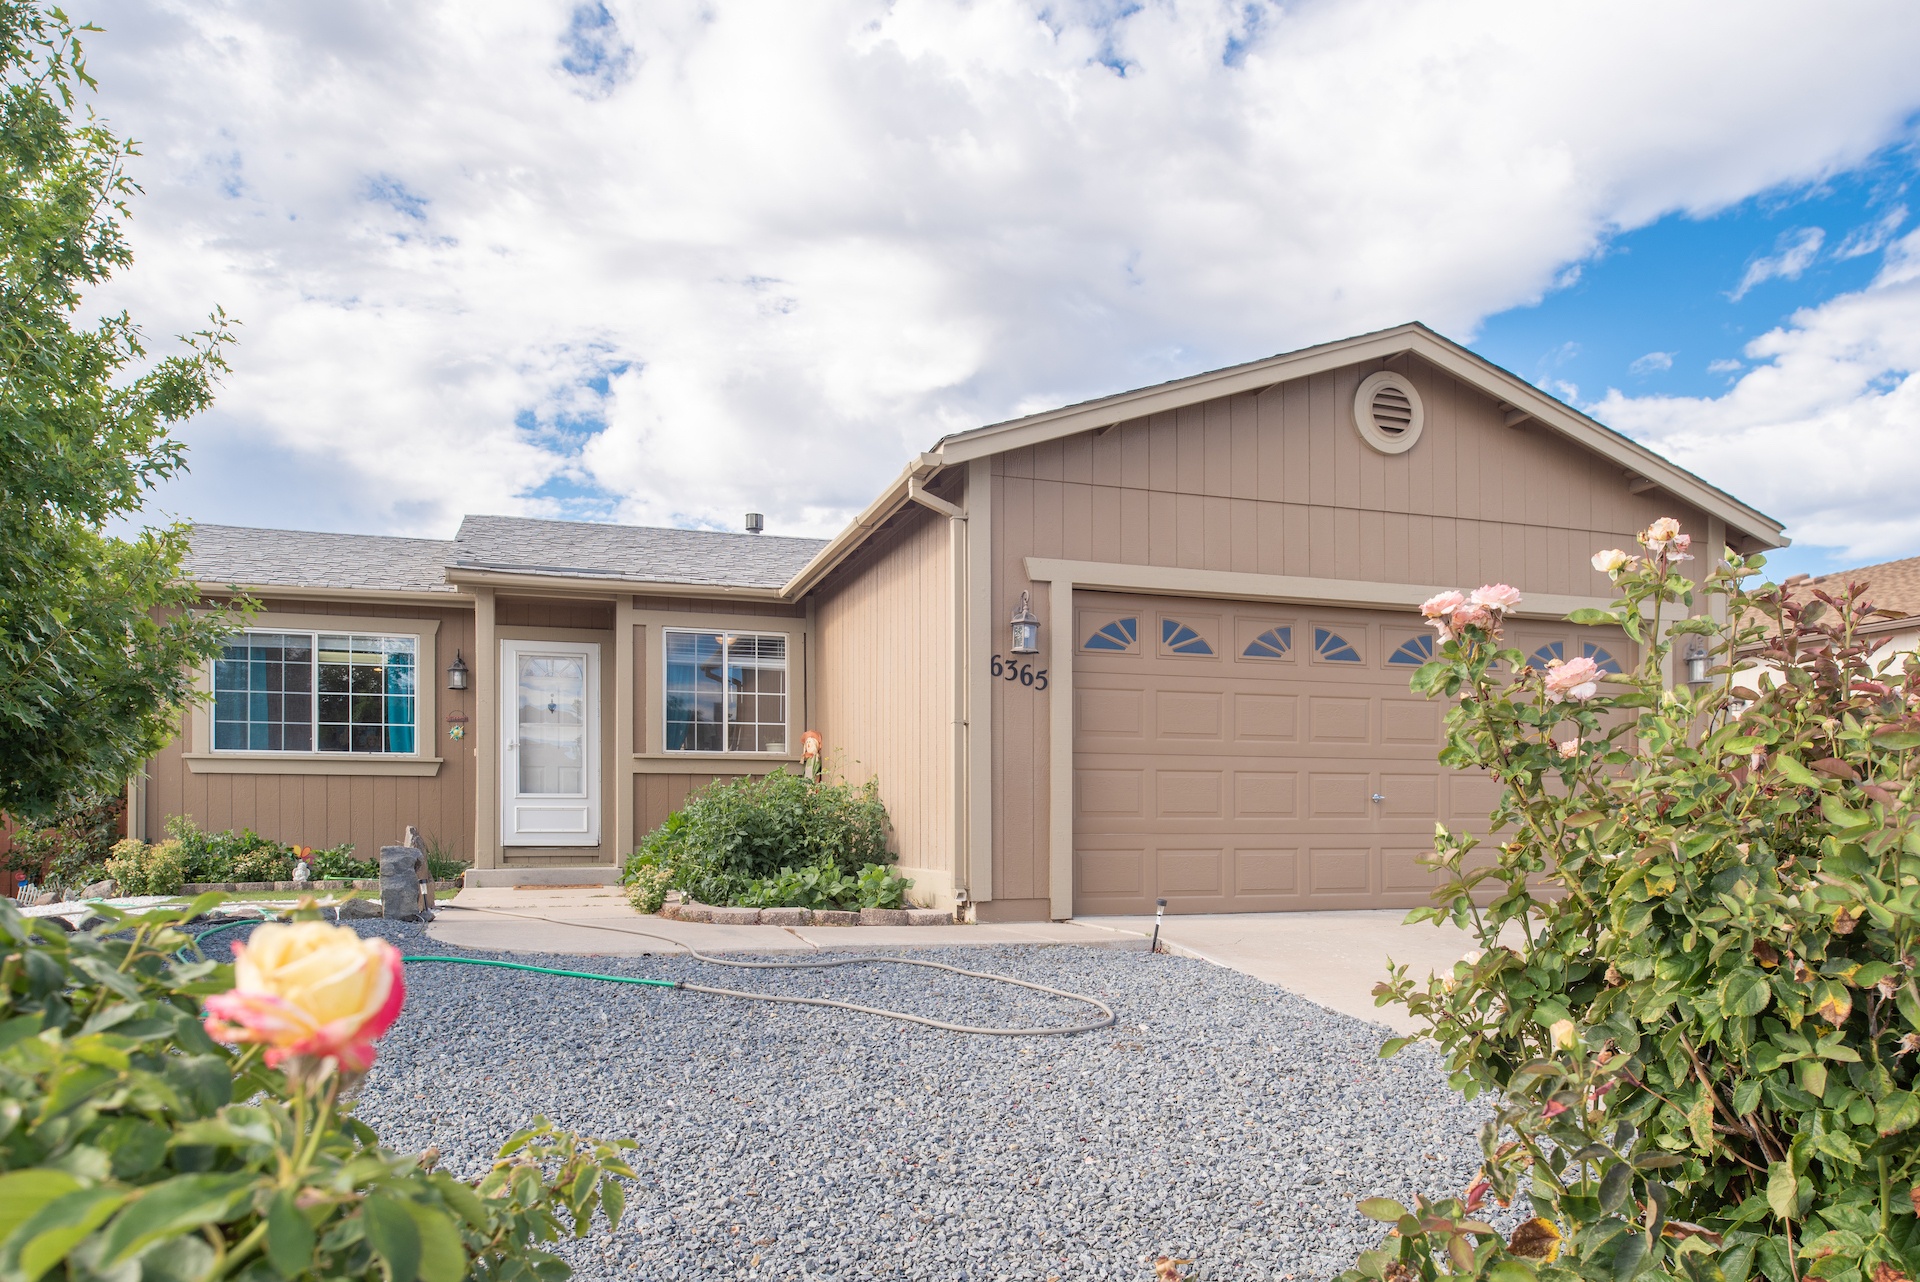 6365 Yukon Drive - sold on september 6, 2019 for $263,000